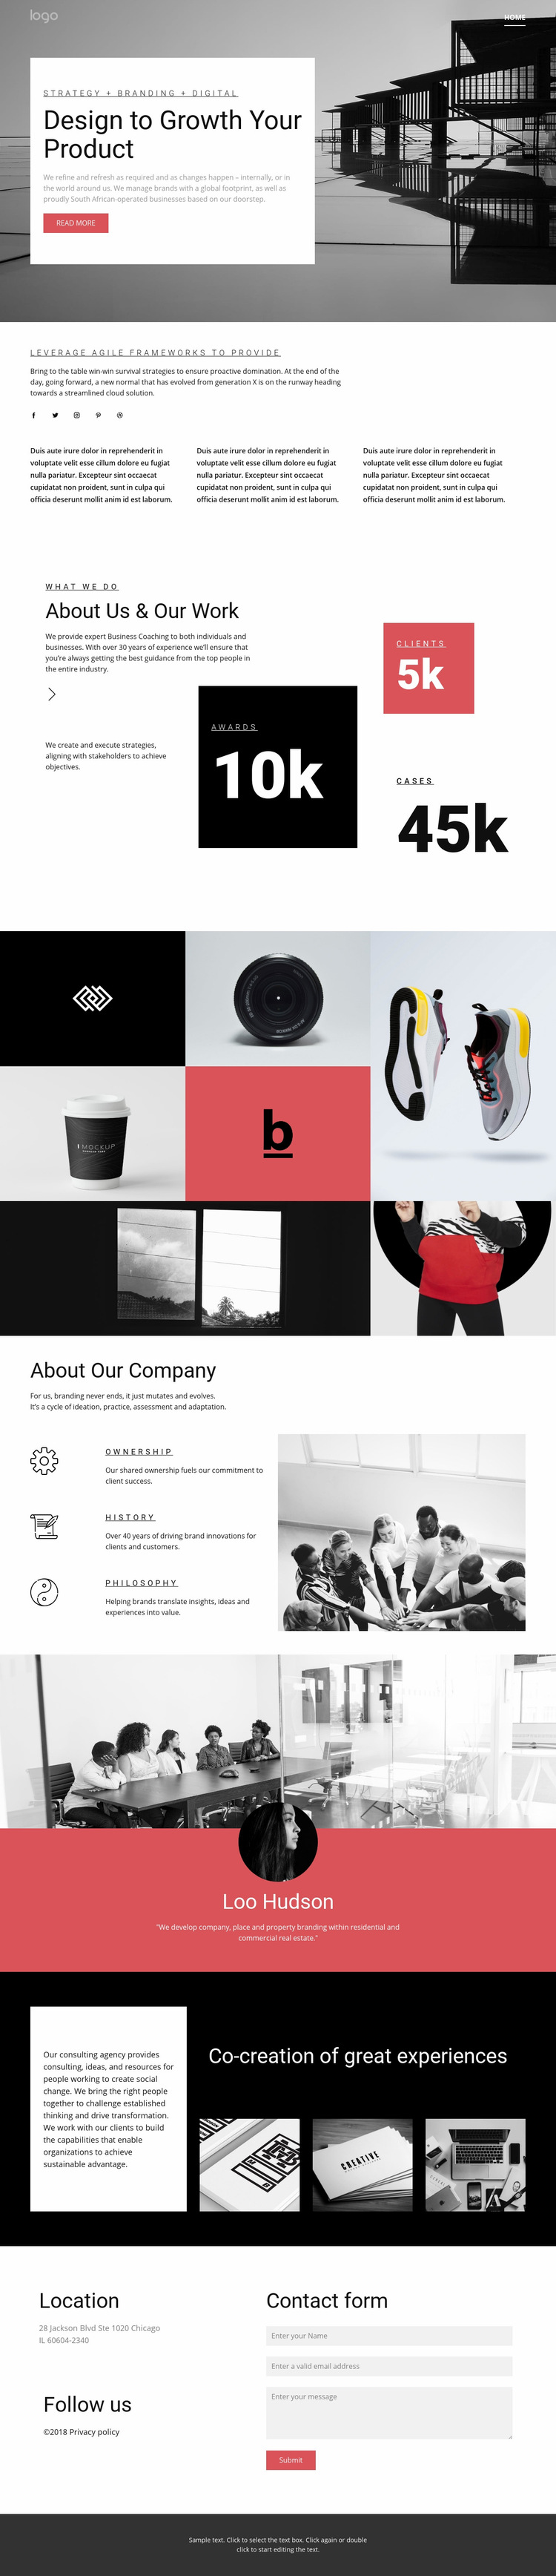 Business growth agency Web Page Design